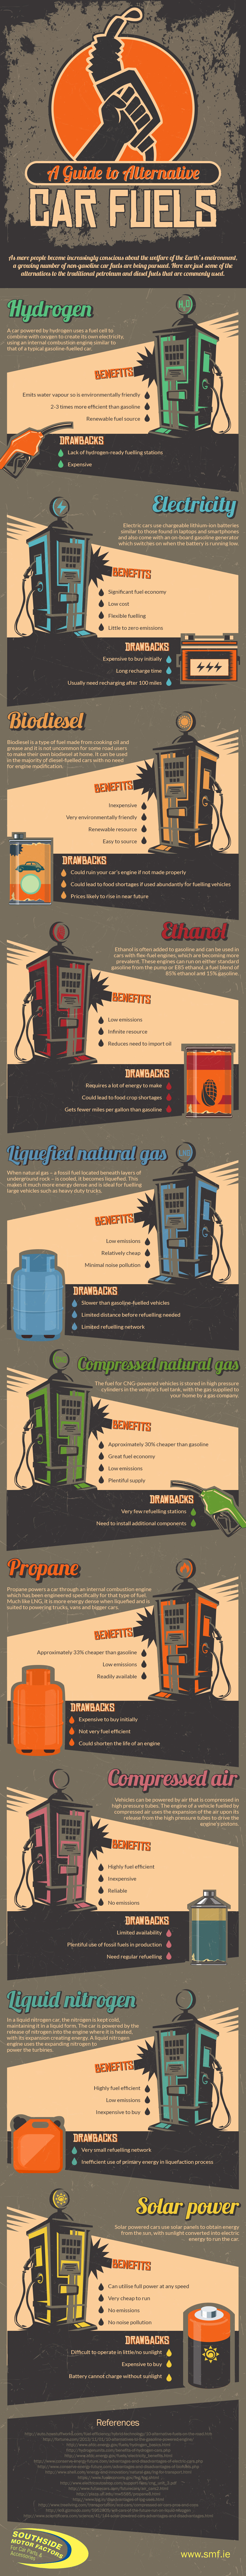 A Guide to Alternative Car Fuels [Infographic] | ecogreenlove